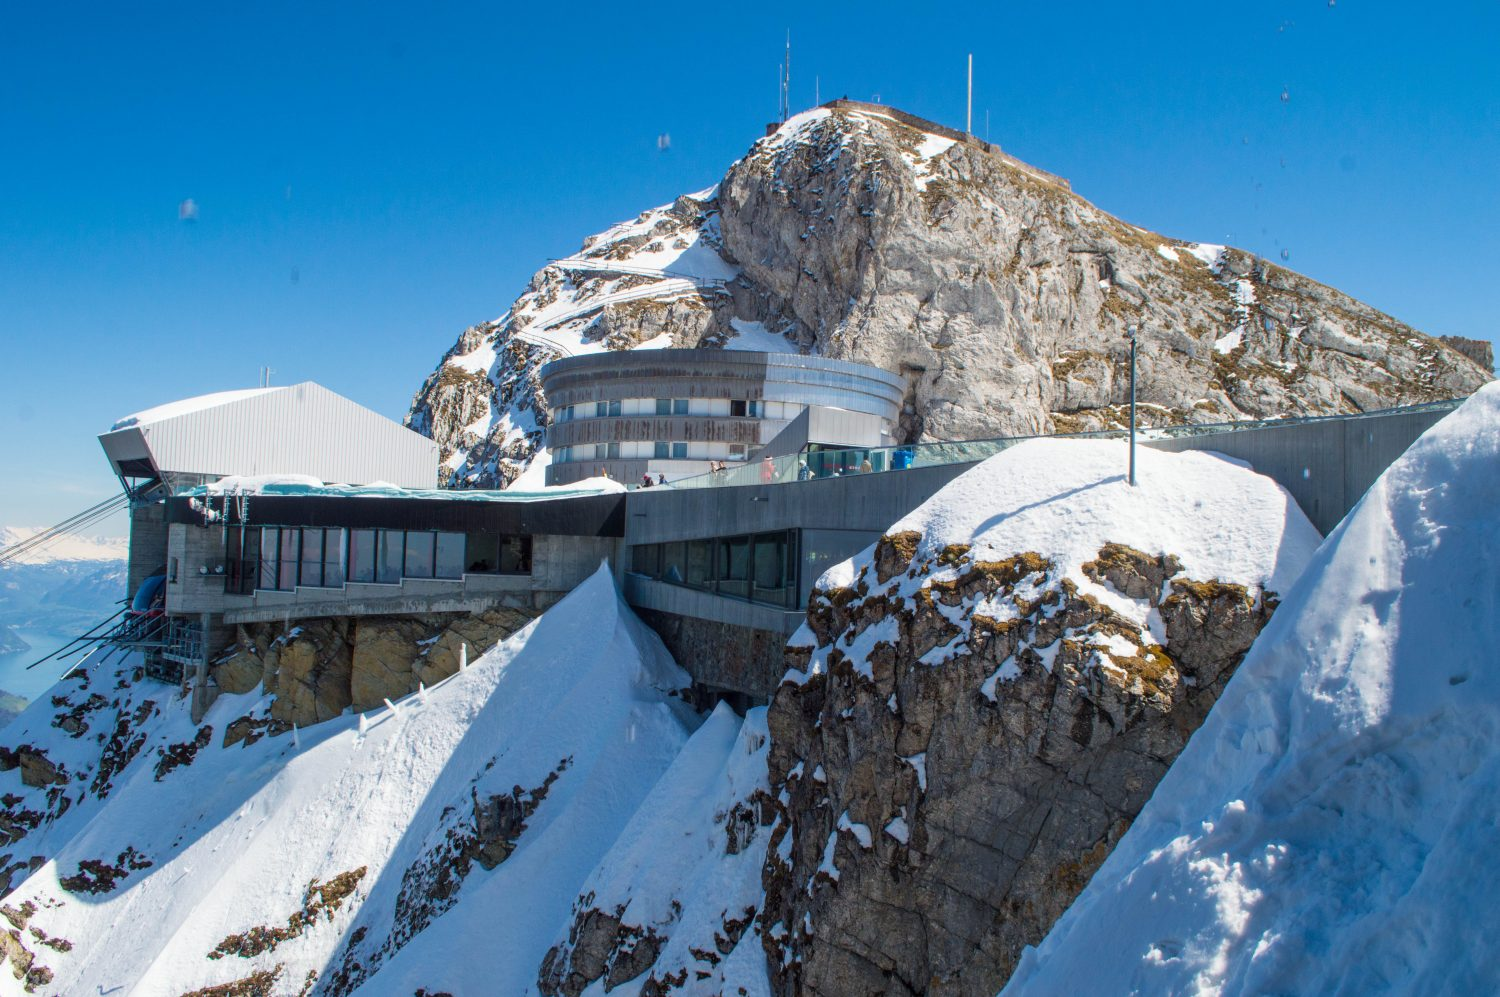 The visitor center on top of Mount Pilatus by Lake Lucerne